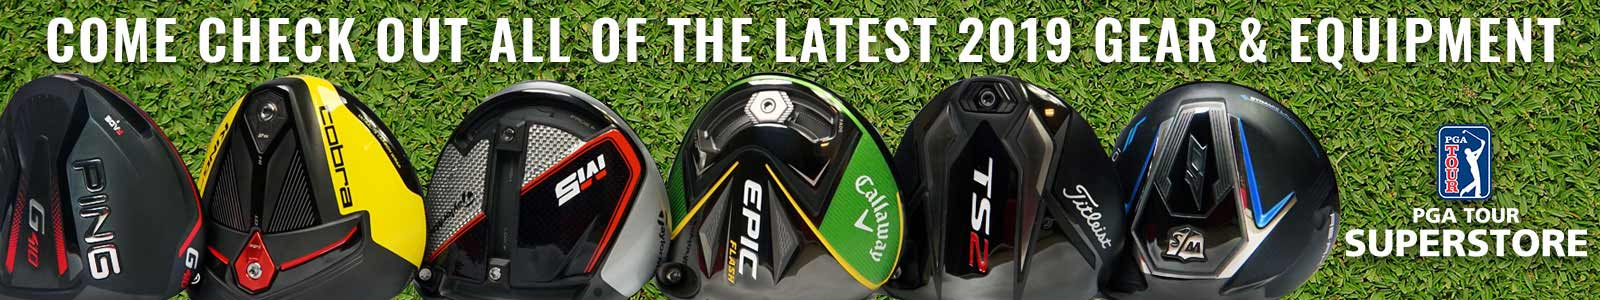 PGA TOUR Superstore has the newest gear!